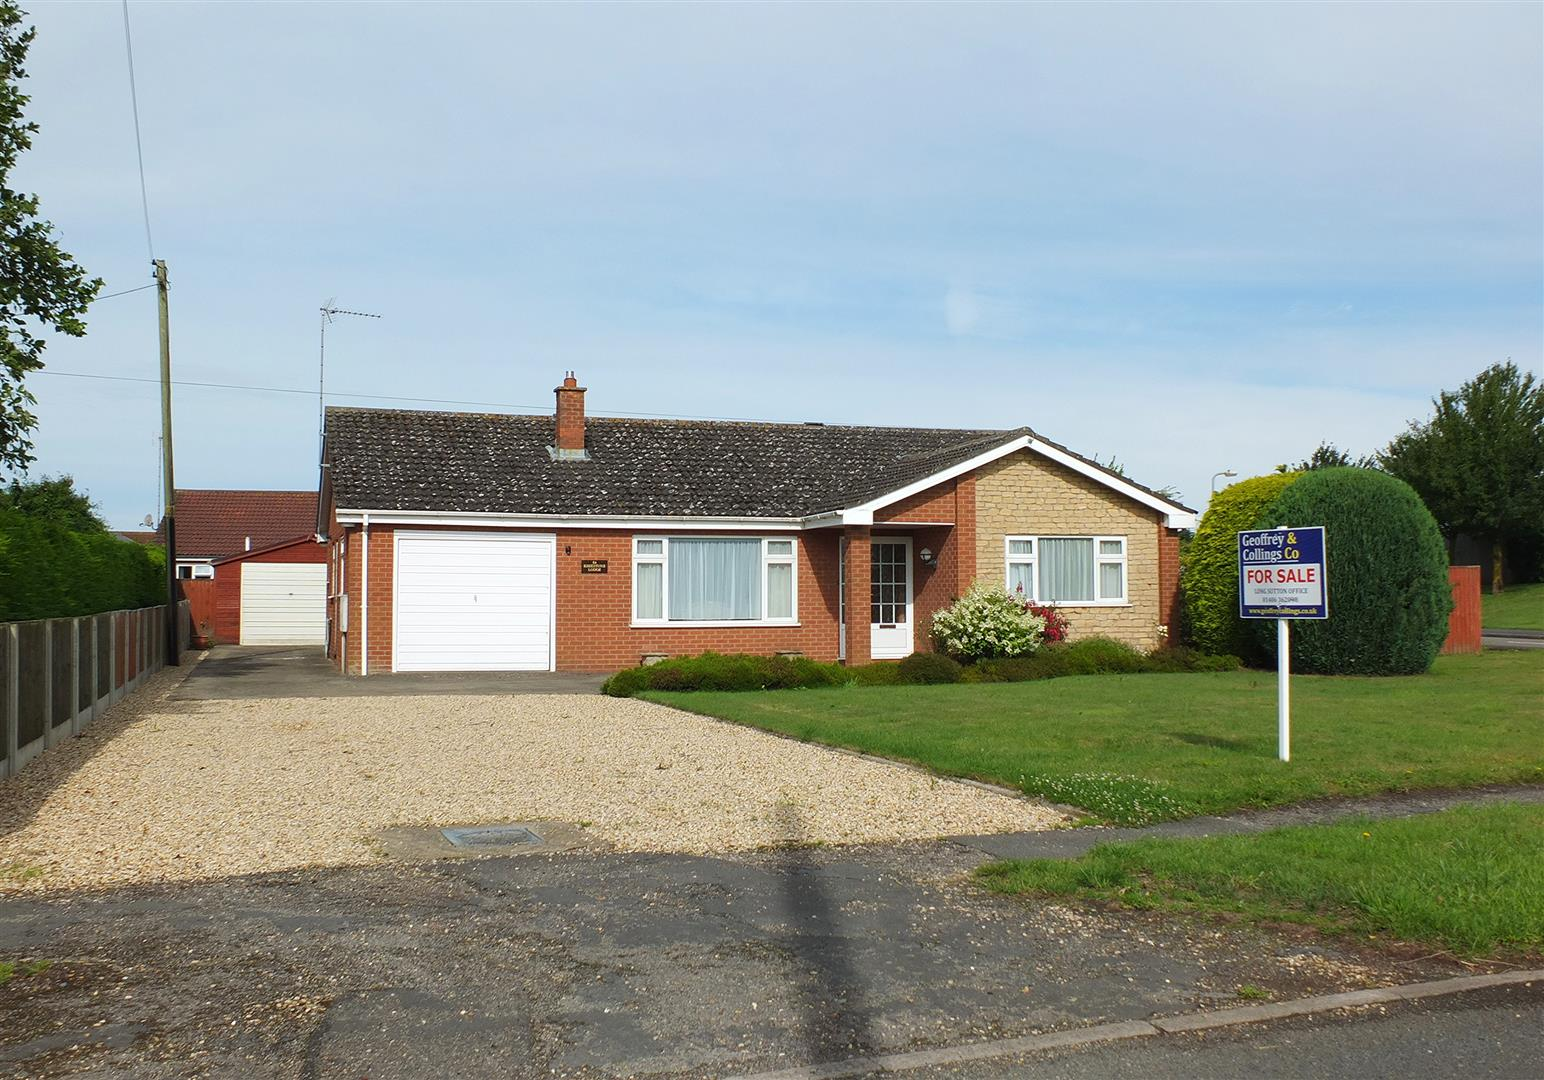 3 bed detached bungalow for sale in Long Sutton Spalding, PE12 9AD, PE12